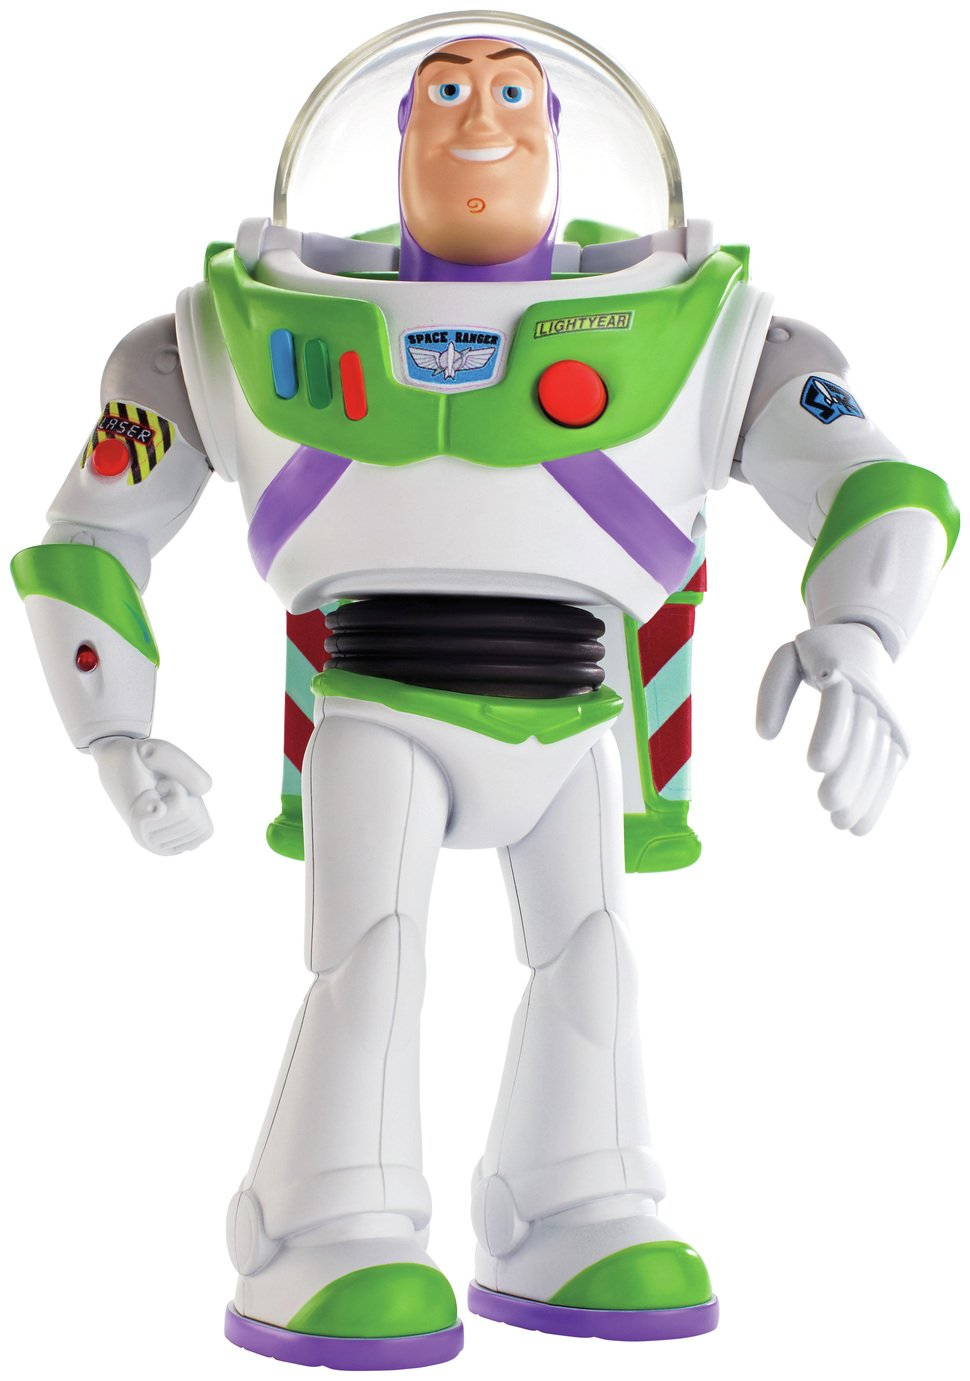 Disney Pixar Toy Story 4 Ultimate Walking Buzz Lightyear